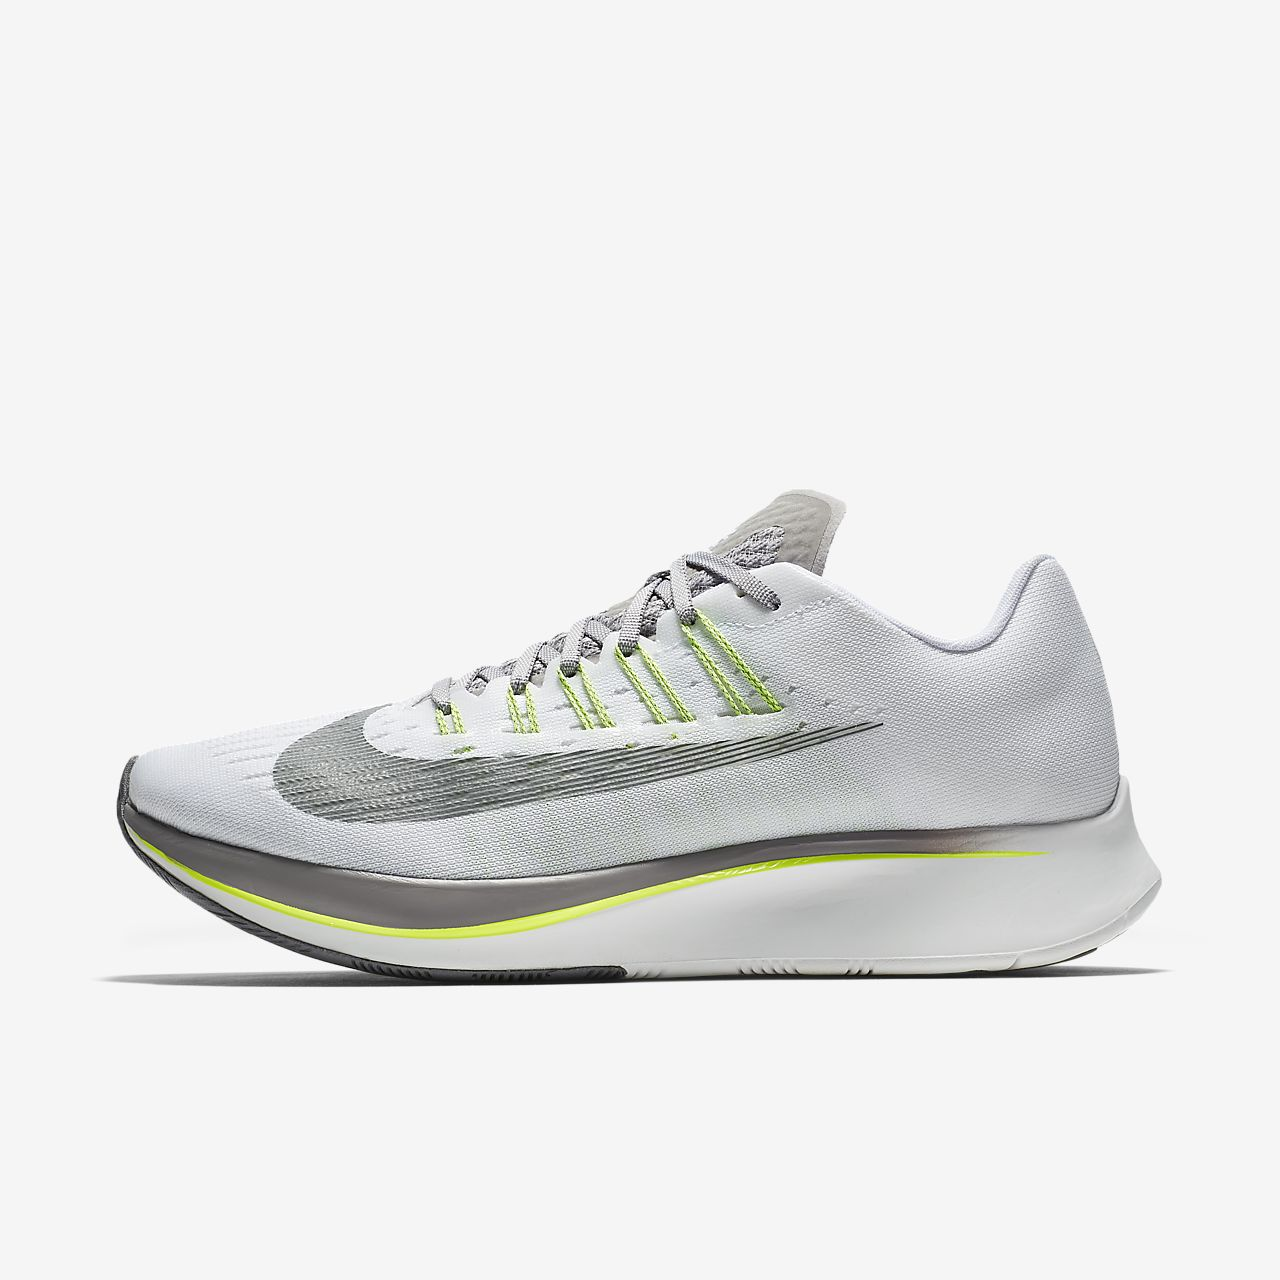 separation shoes 45b7e 2f846 ... Nike Zoom Fly Mens Running Shoe